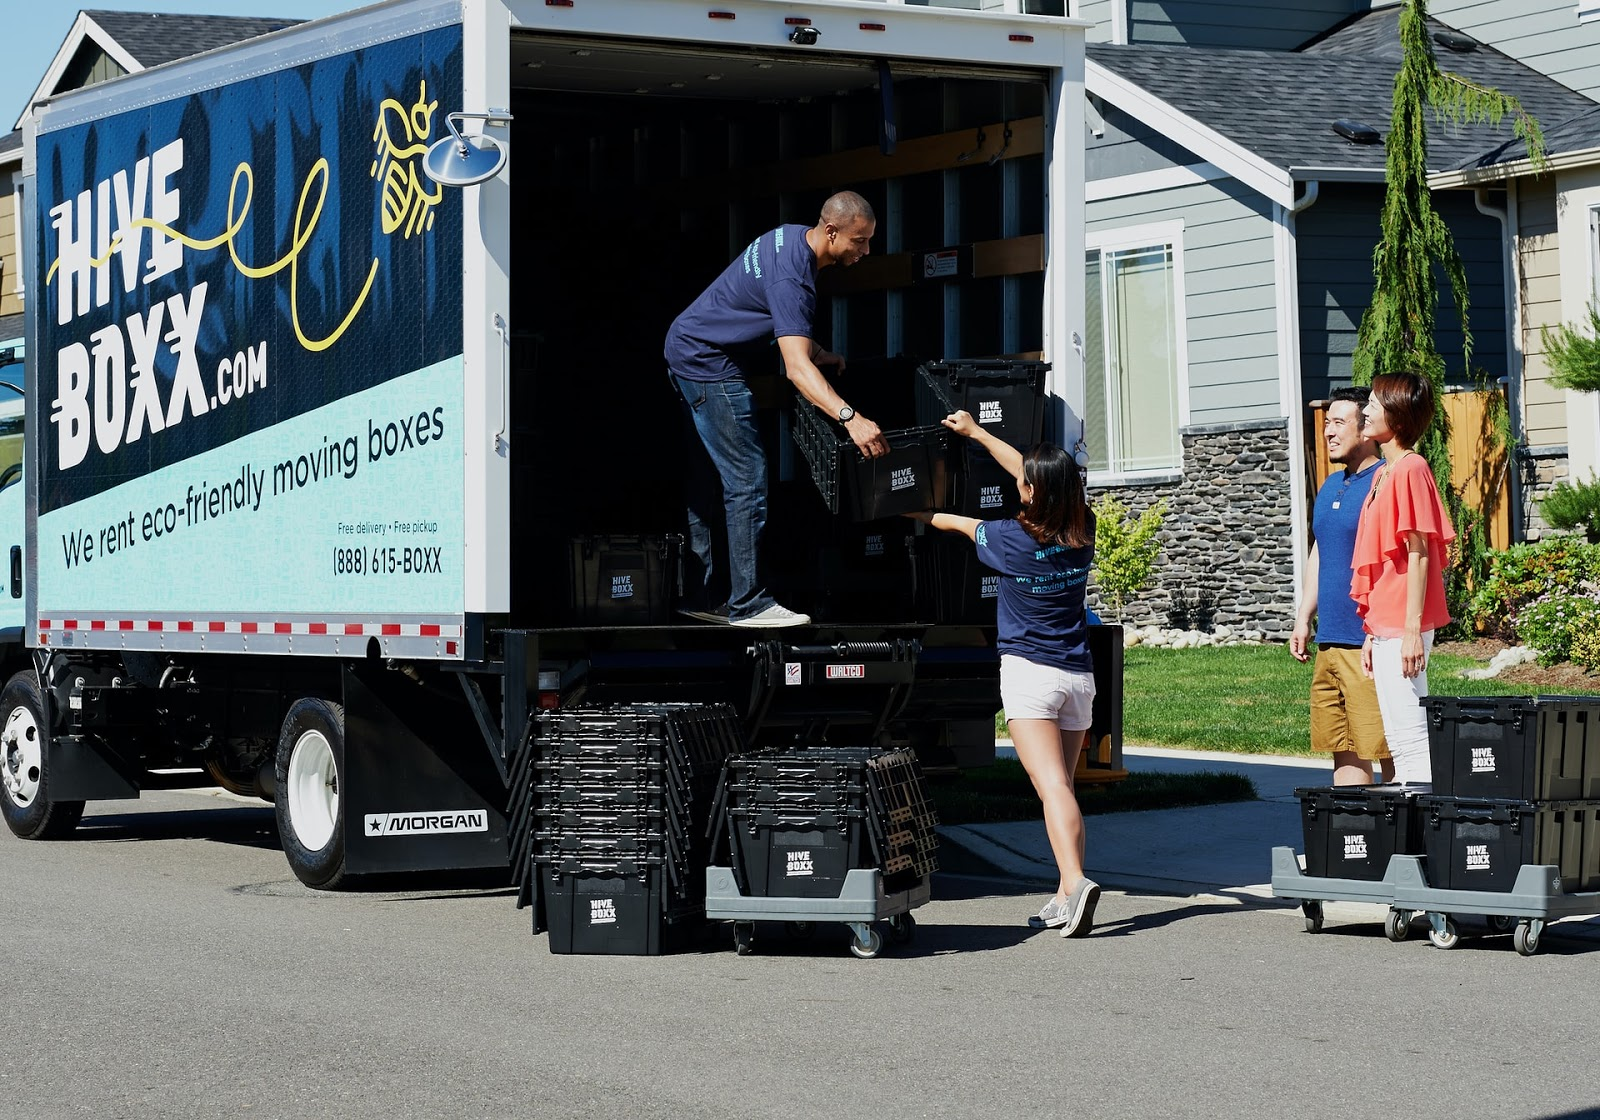 movers unloading boxes as the parents of a college graduate watch, smiling